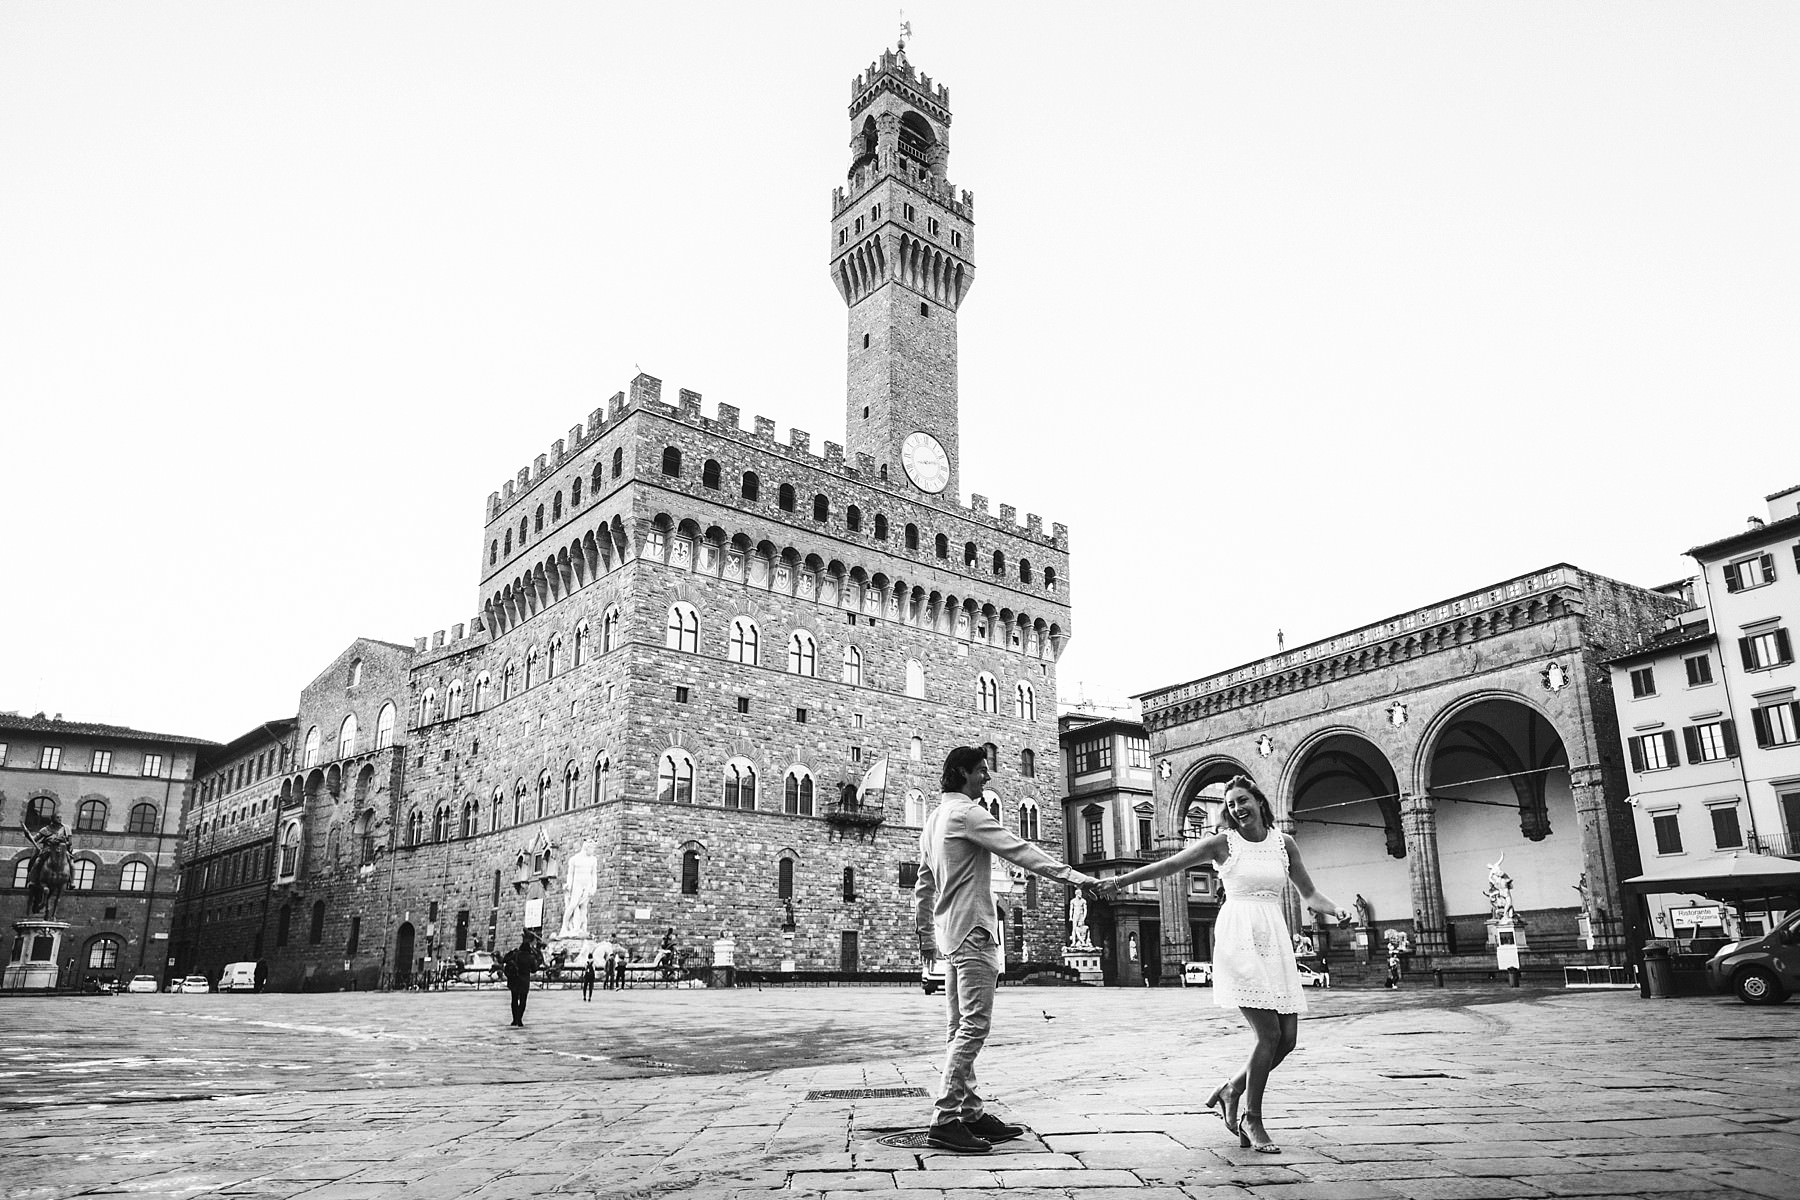 Lovely engagement photo session in Florence at Piazza della Signoria at sunrise time. Enjoy Florence without tourists in the streets